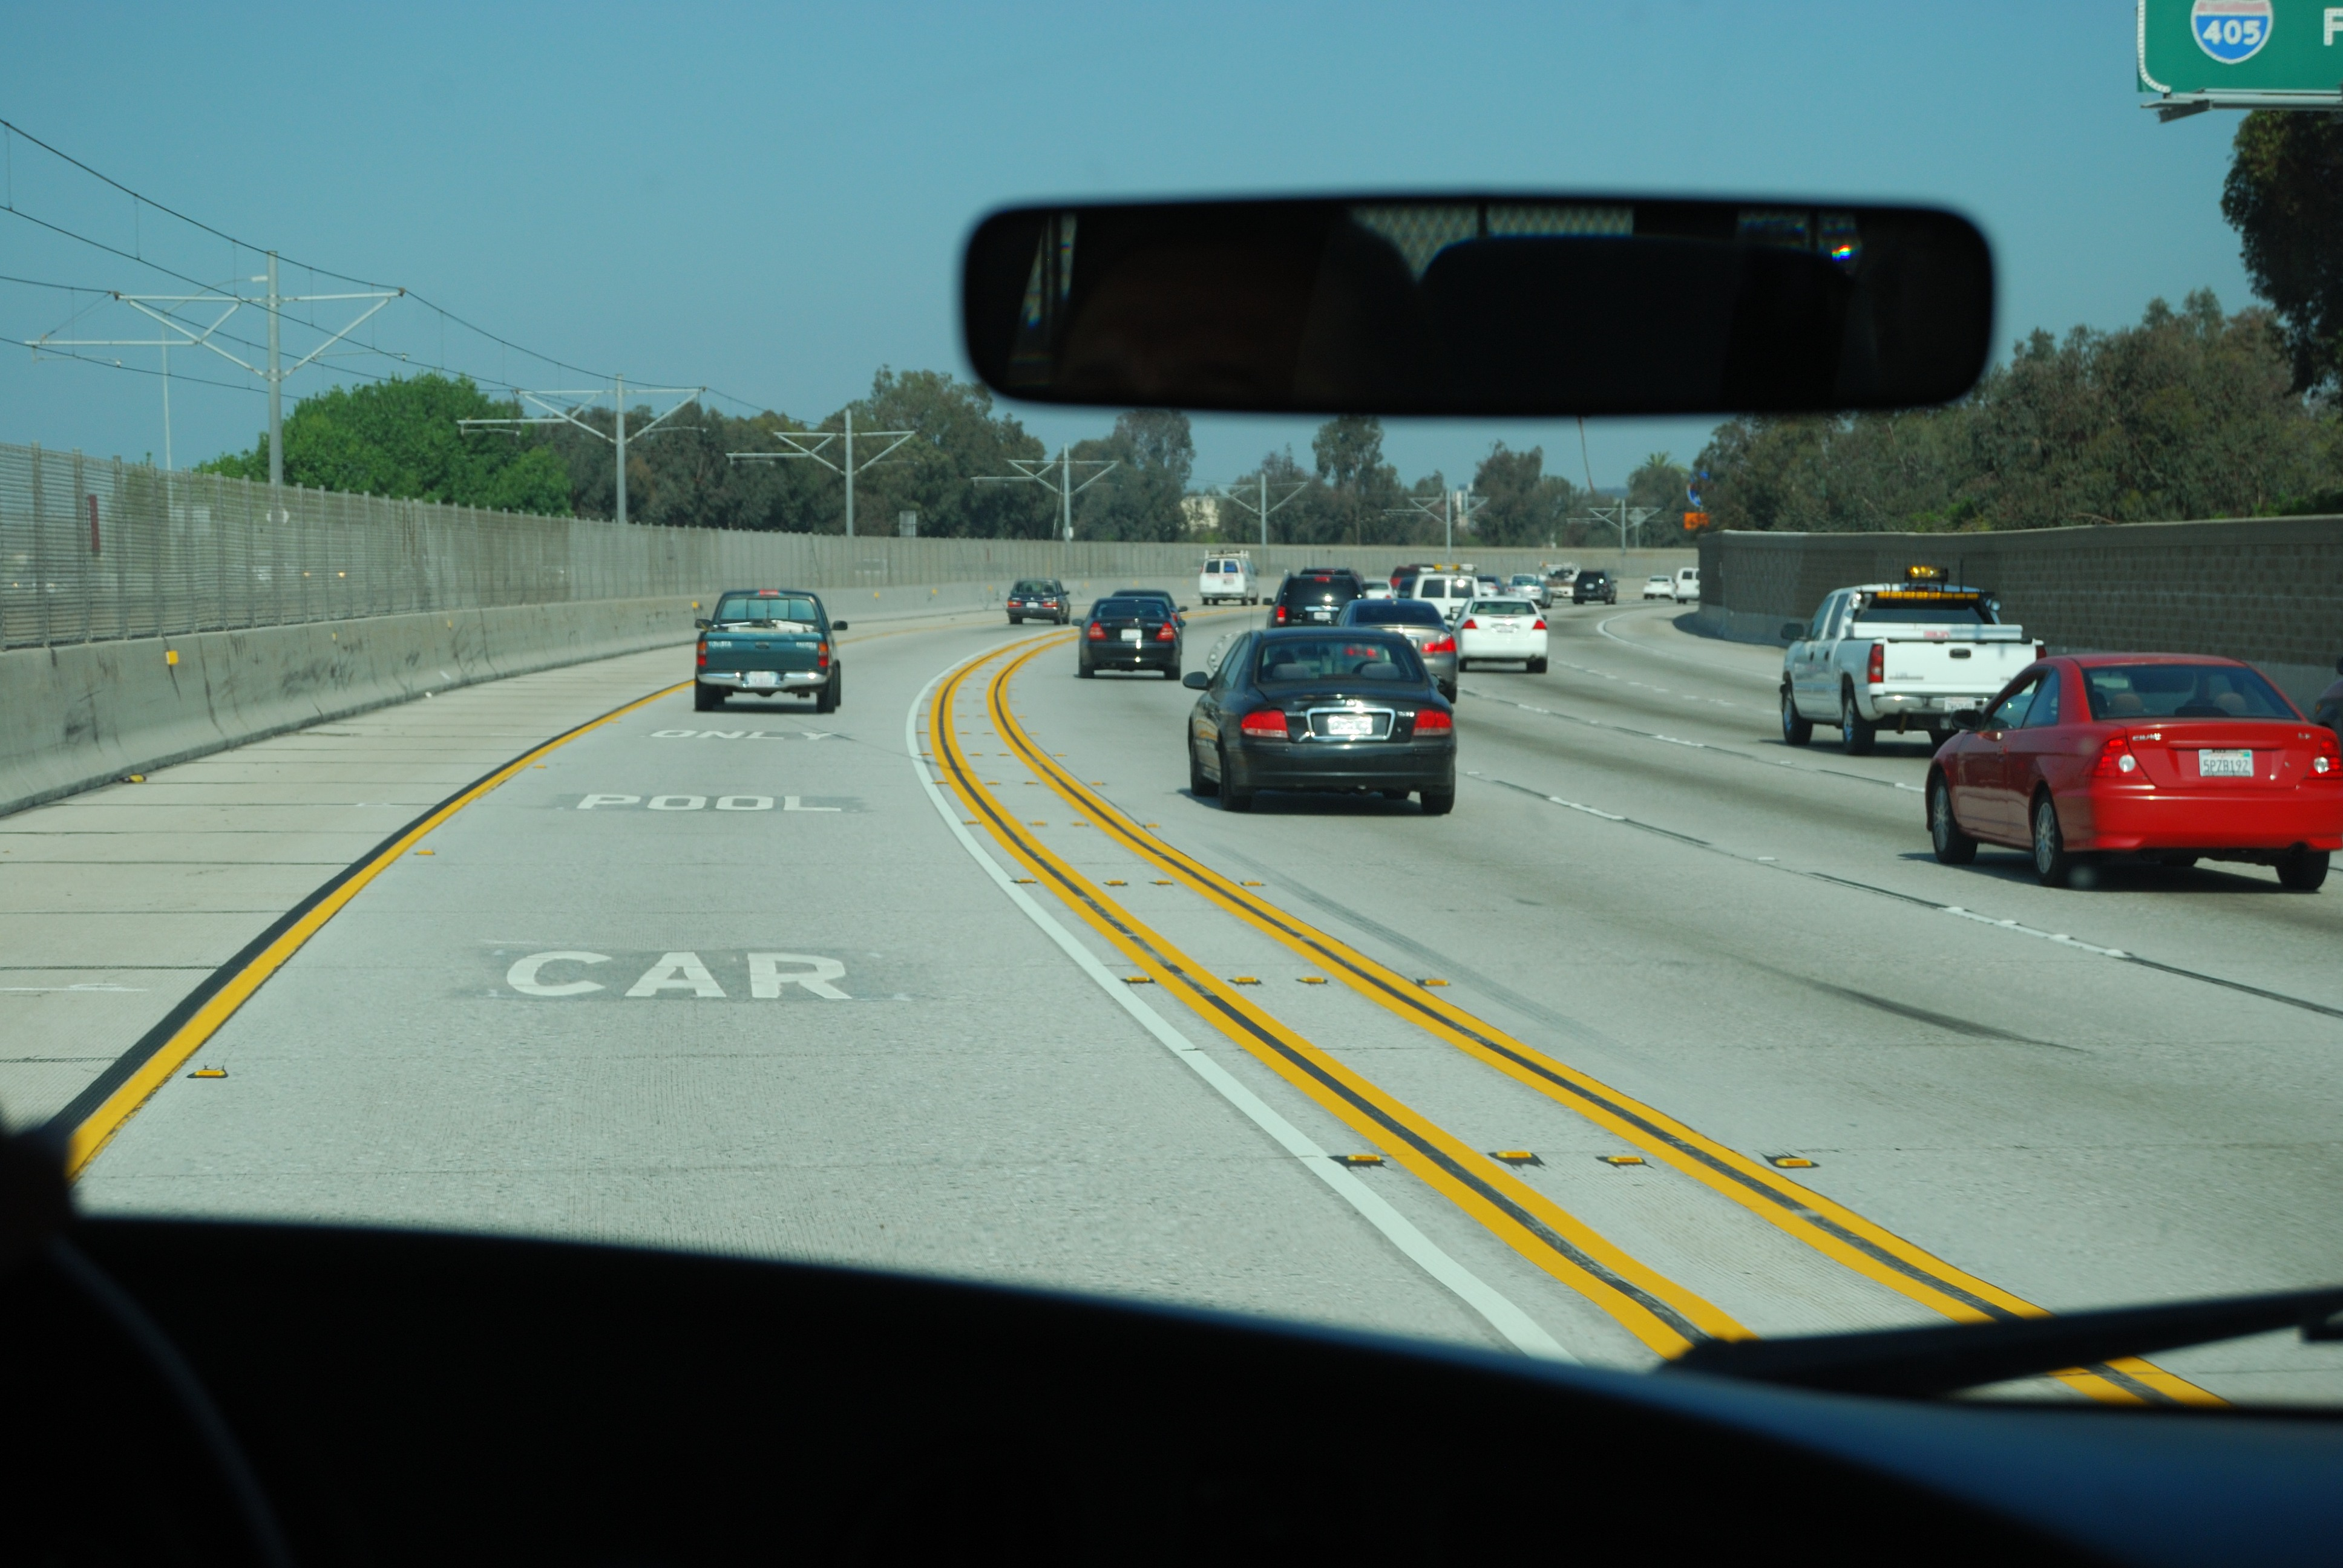 File:Car pool only lane.JPG - Wikimedia Commons